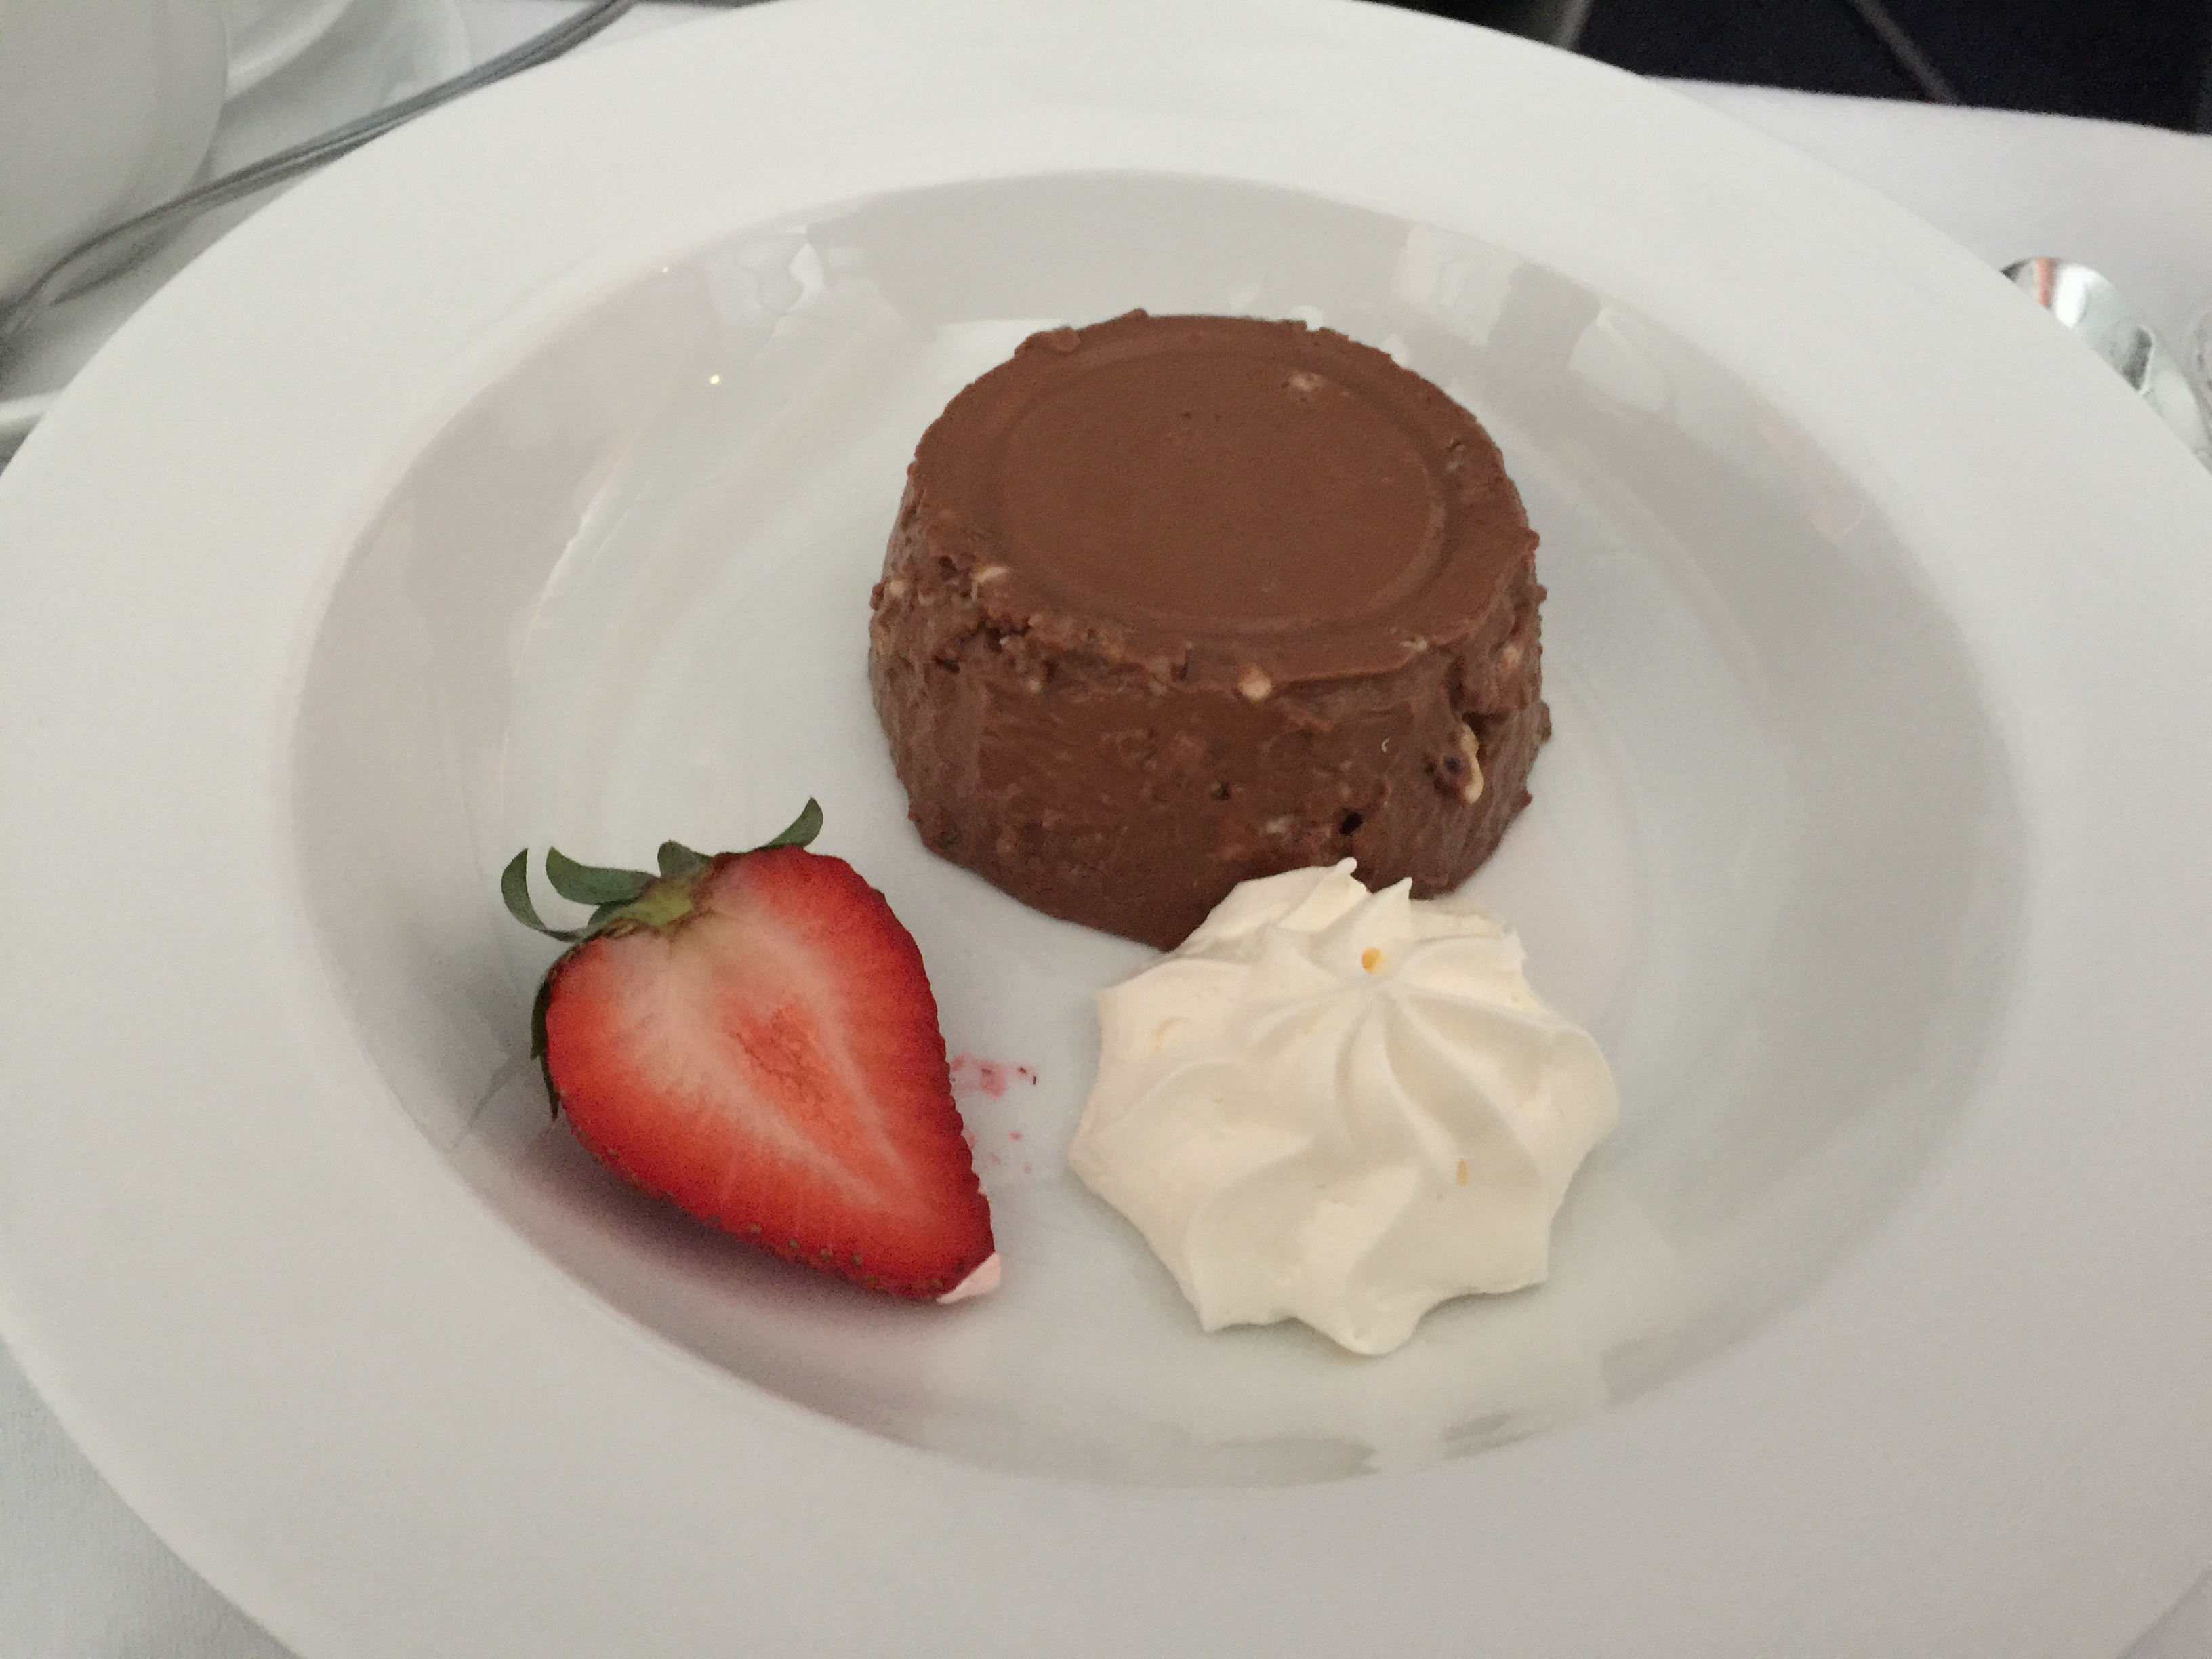 Dessert: Chocolate and Hazelnut pudding, served with whipped cream and fresh strawberry